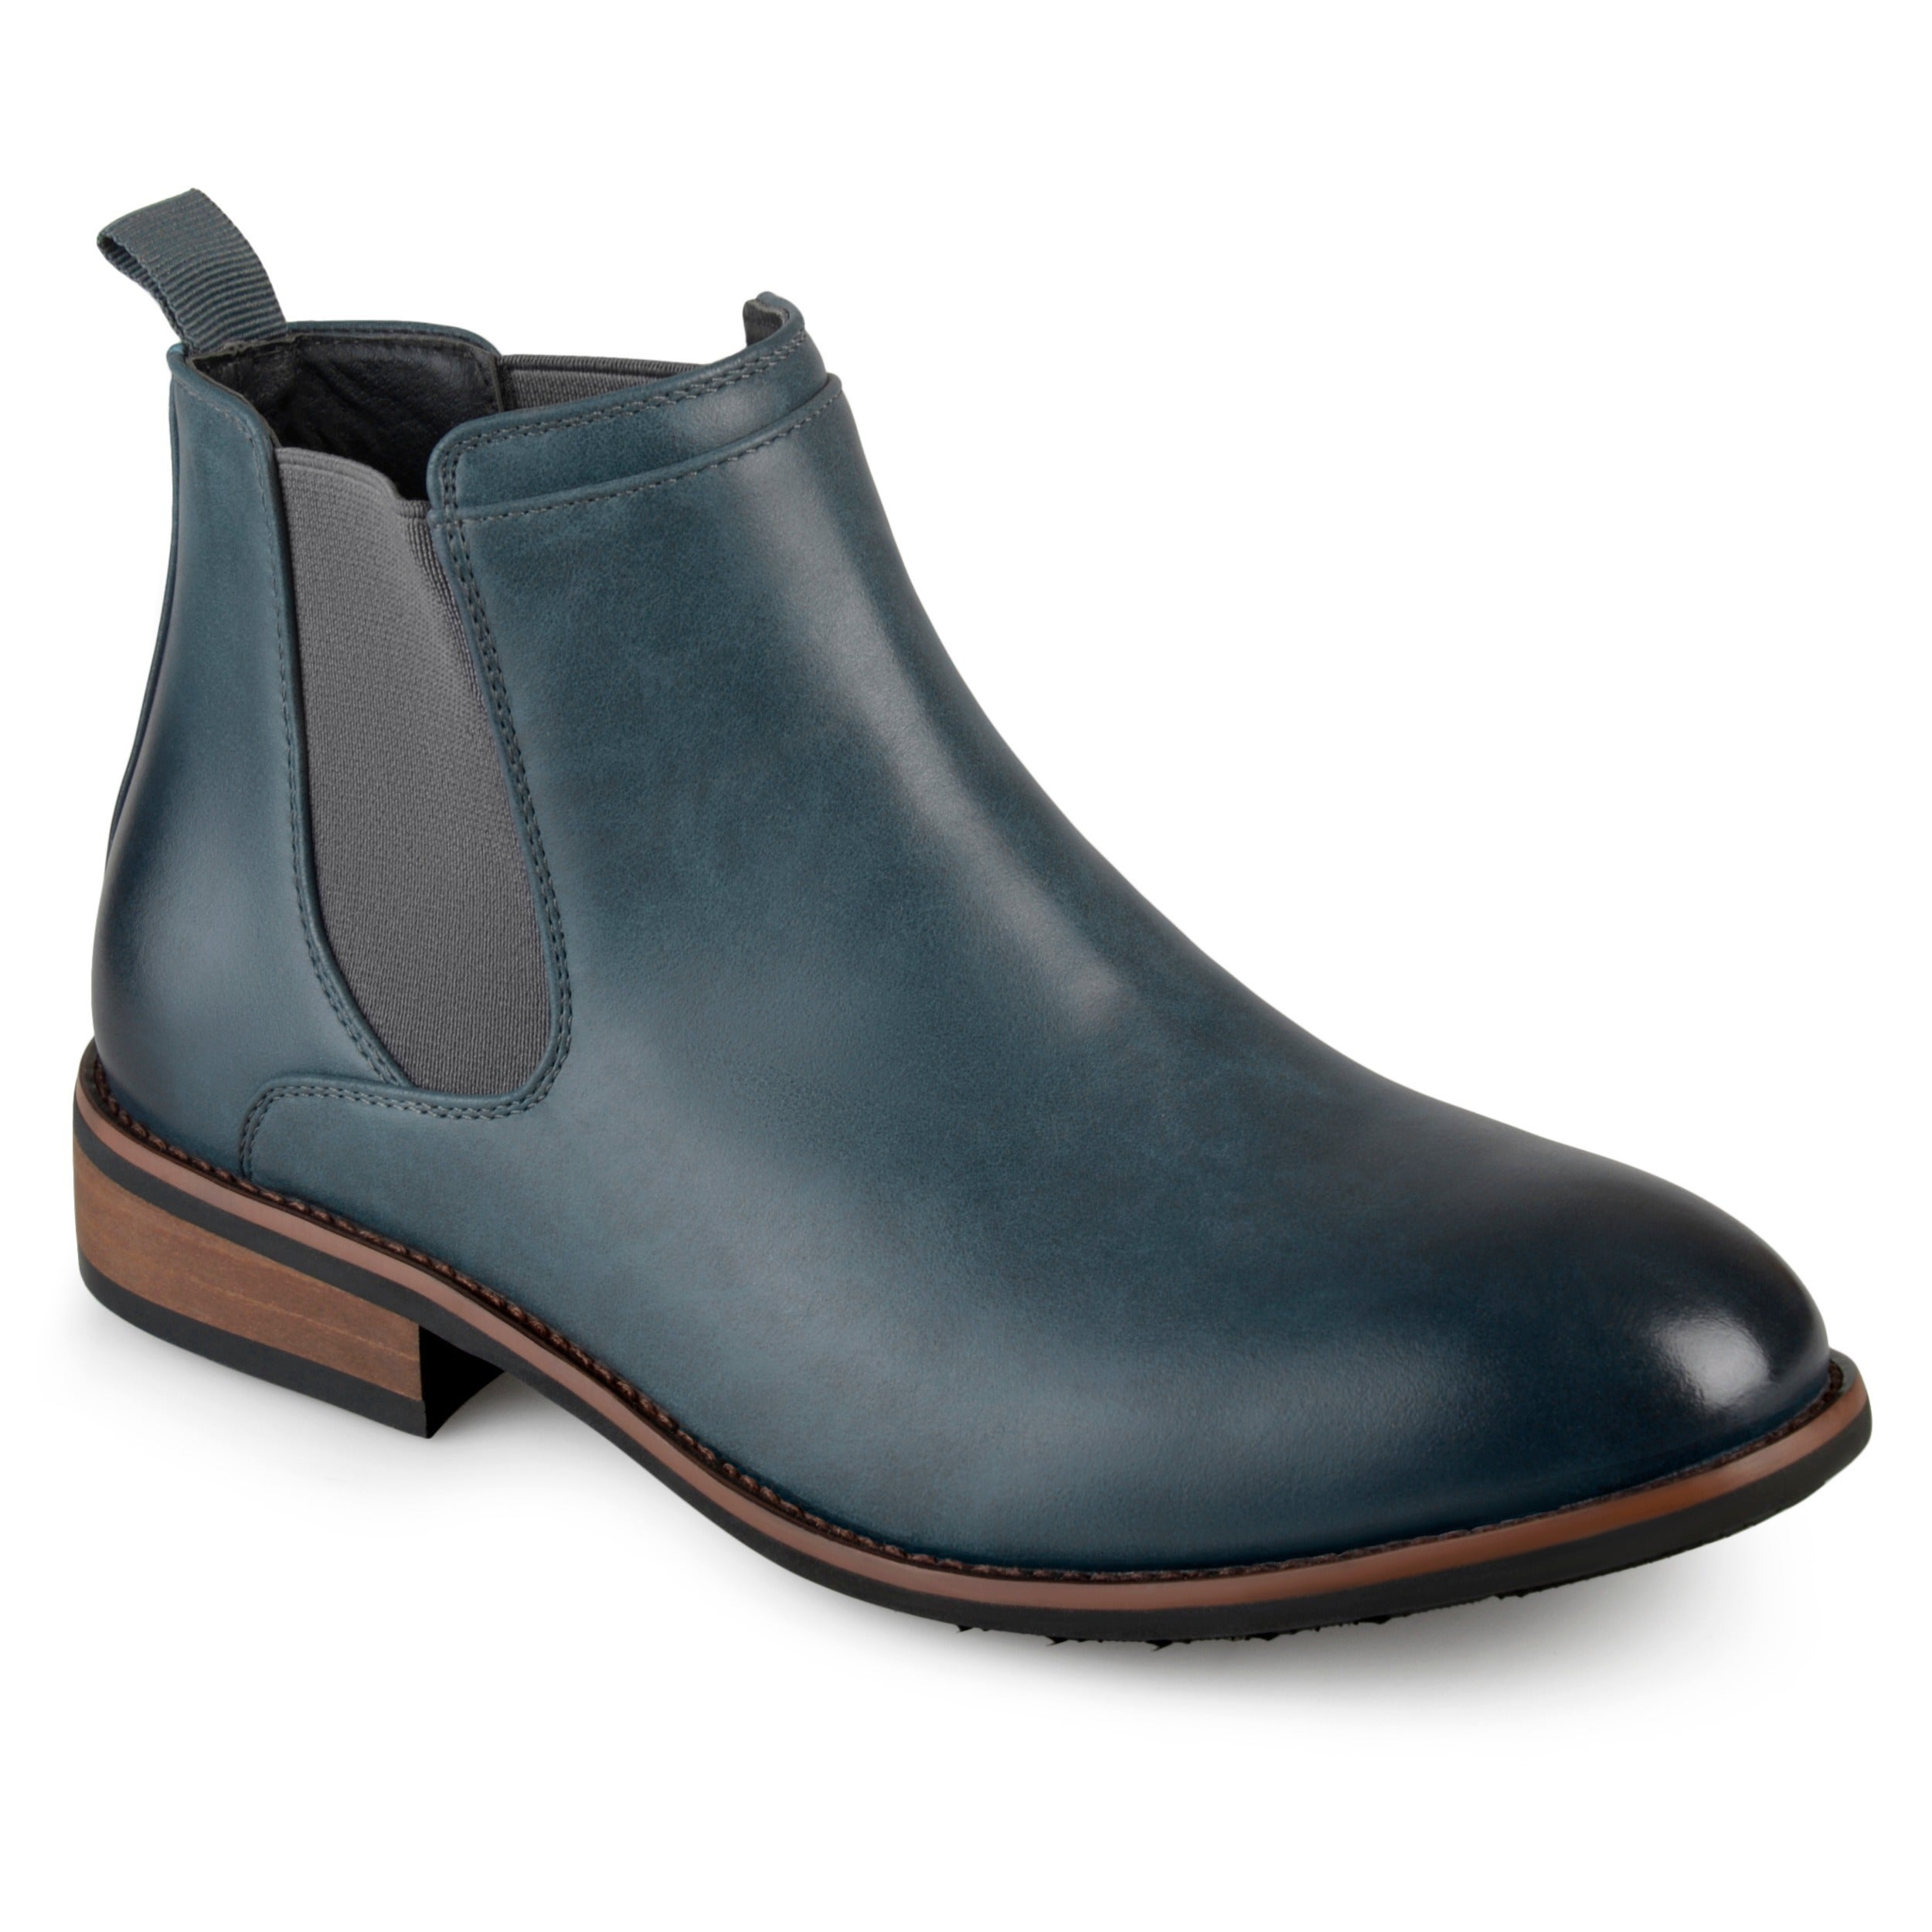 4ef432e118 Men s  Landon  Round Toe High Top Chelsea Dress Boots - Free Shipping Today  - Overstock - 12706210